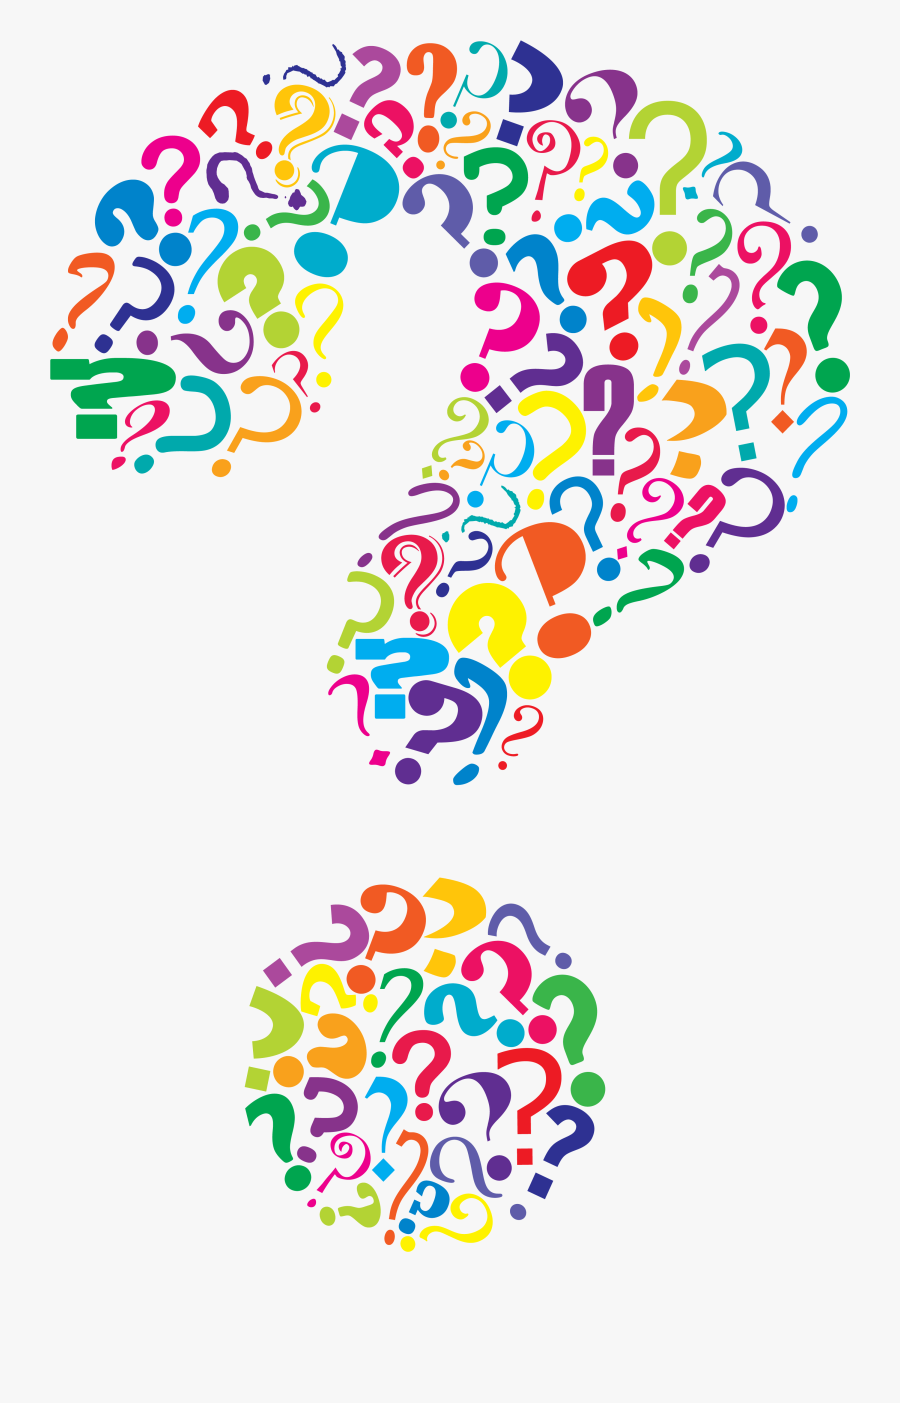 Question Mark Marks Clipart Transparent Png - Question Mark Clipart, Transparent Clipart